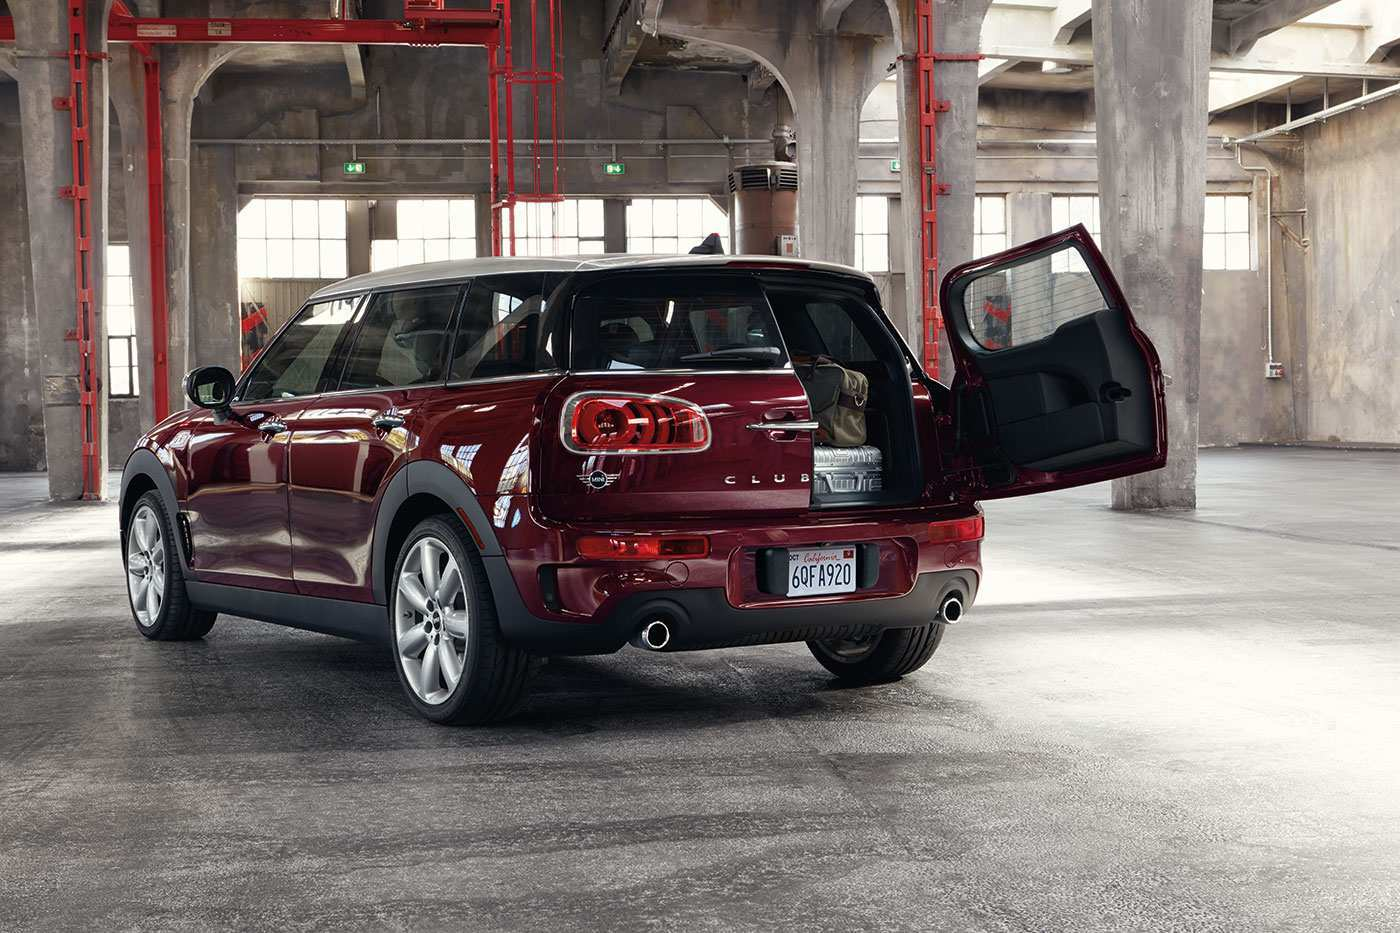 69 The Best 2019 Mini Clubman Engine